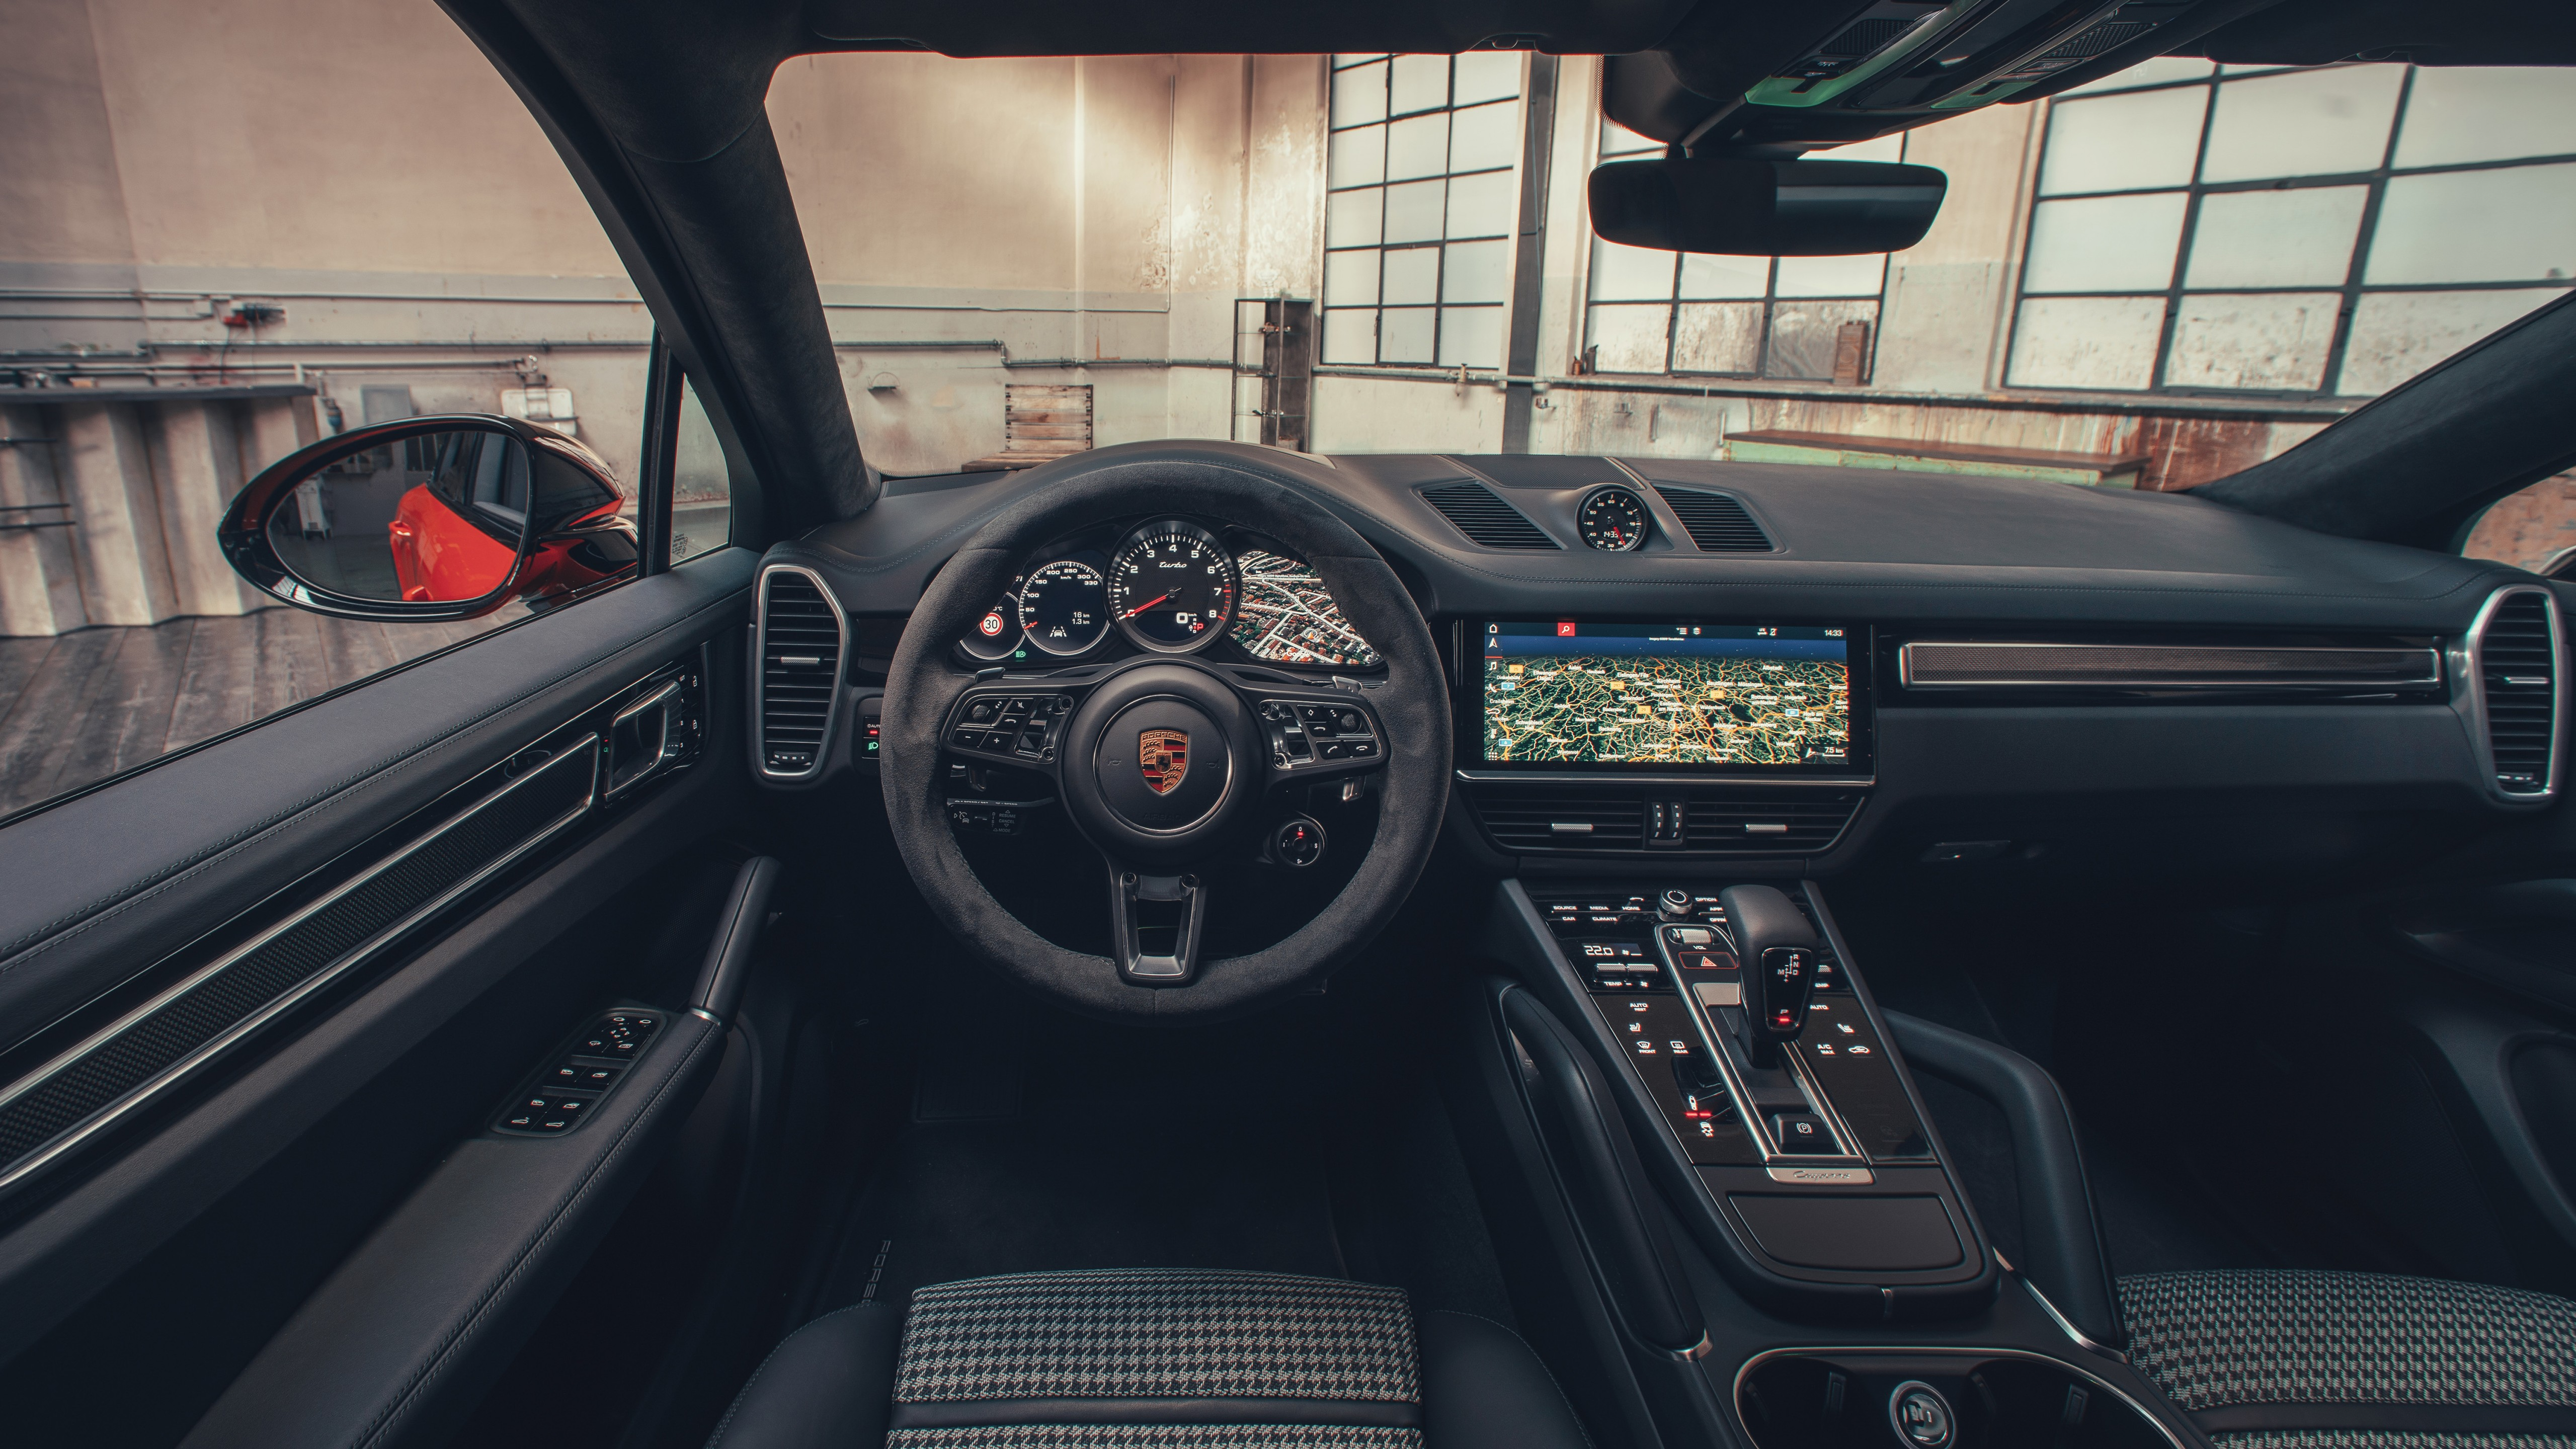 Porsche Cayenne Turbo Coupe 2019 4k Interior Wallpaper Hd Car Wallpapers Id 12324